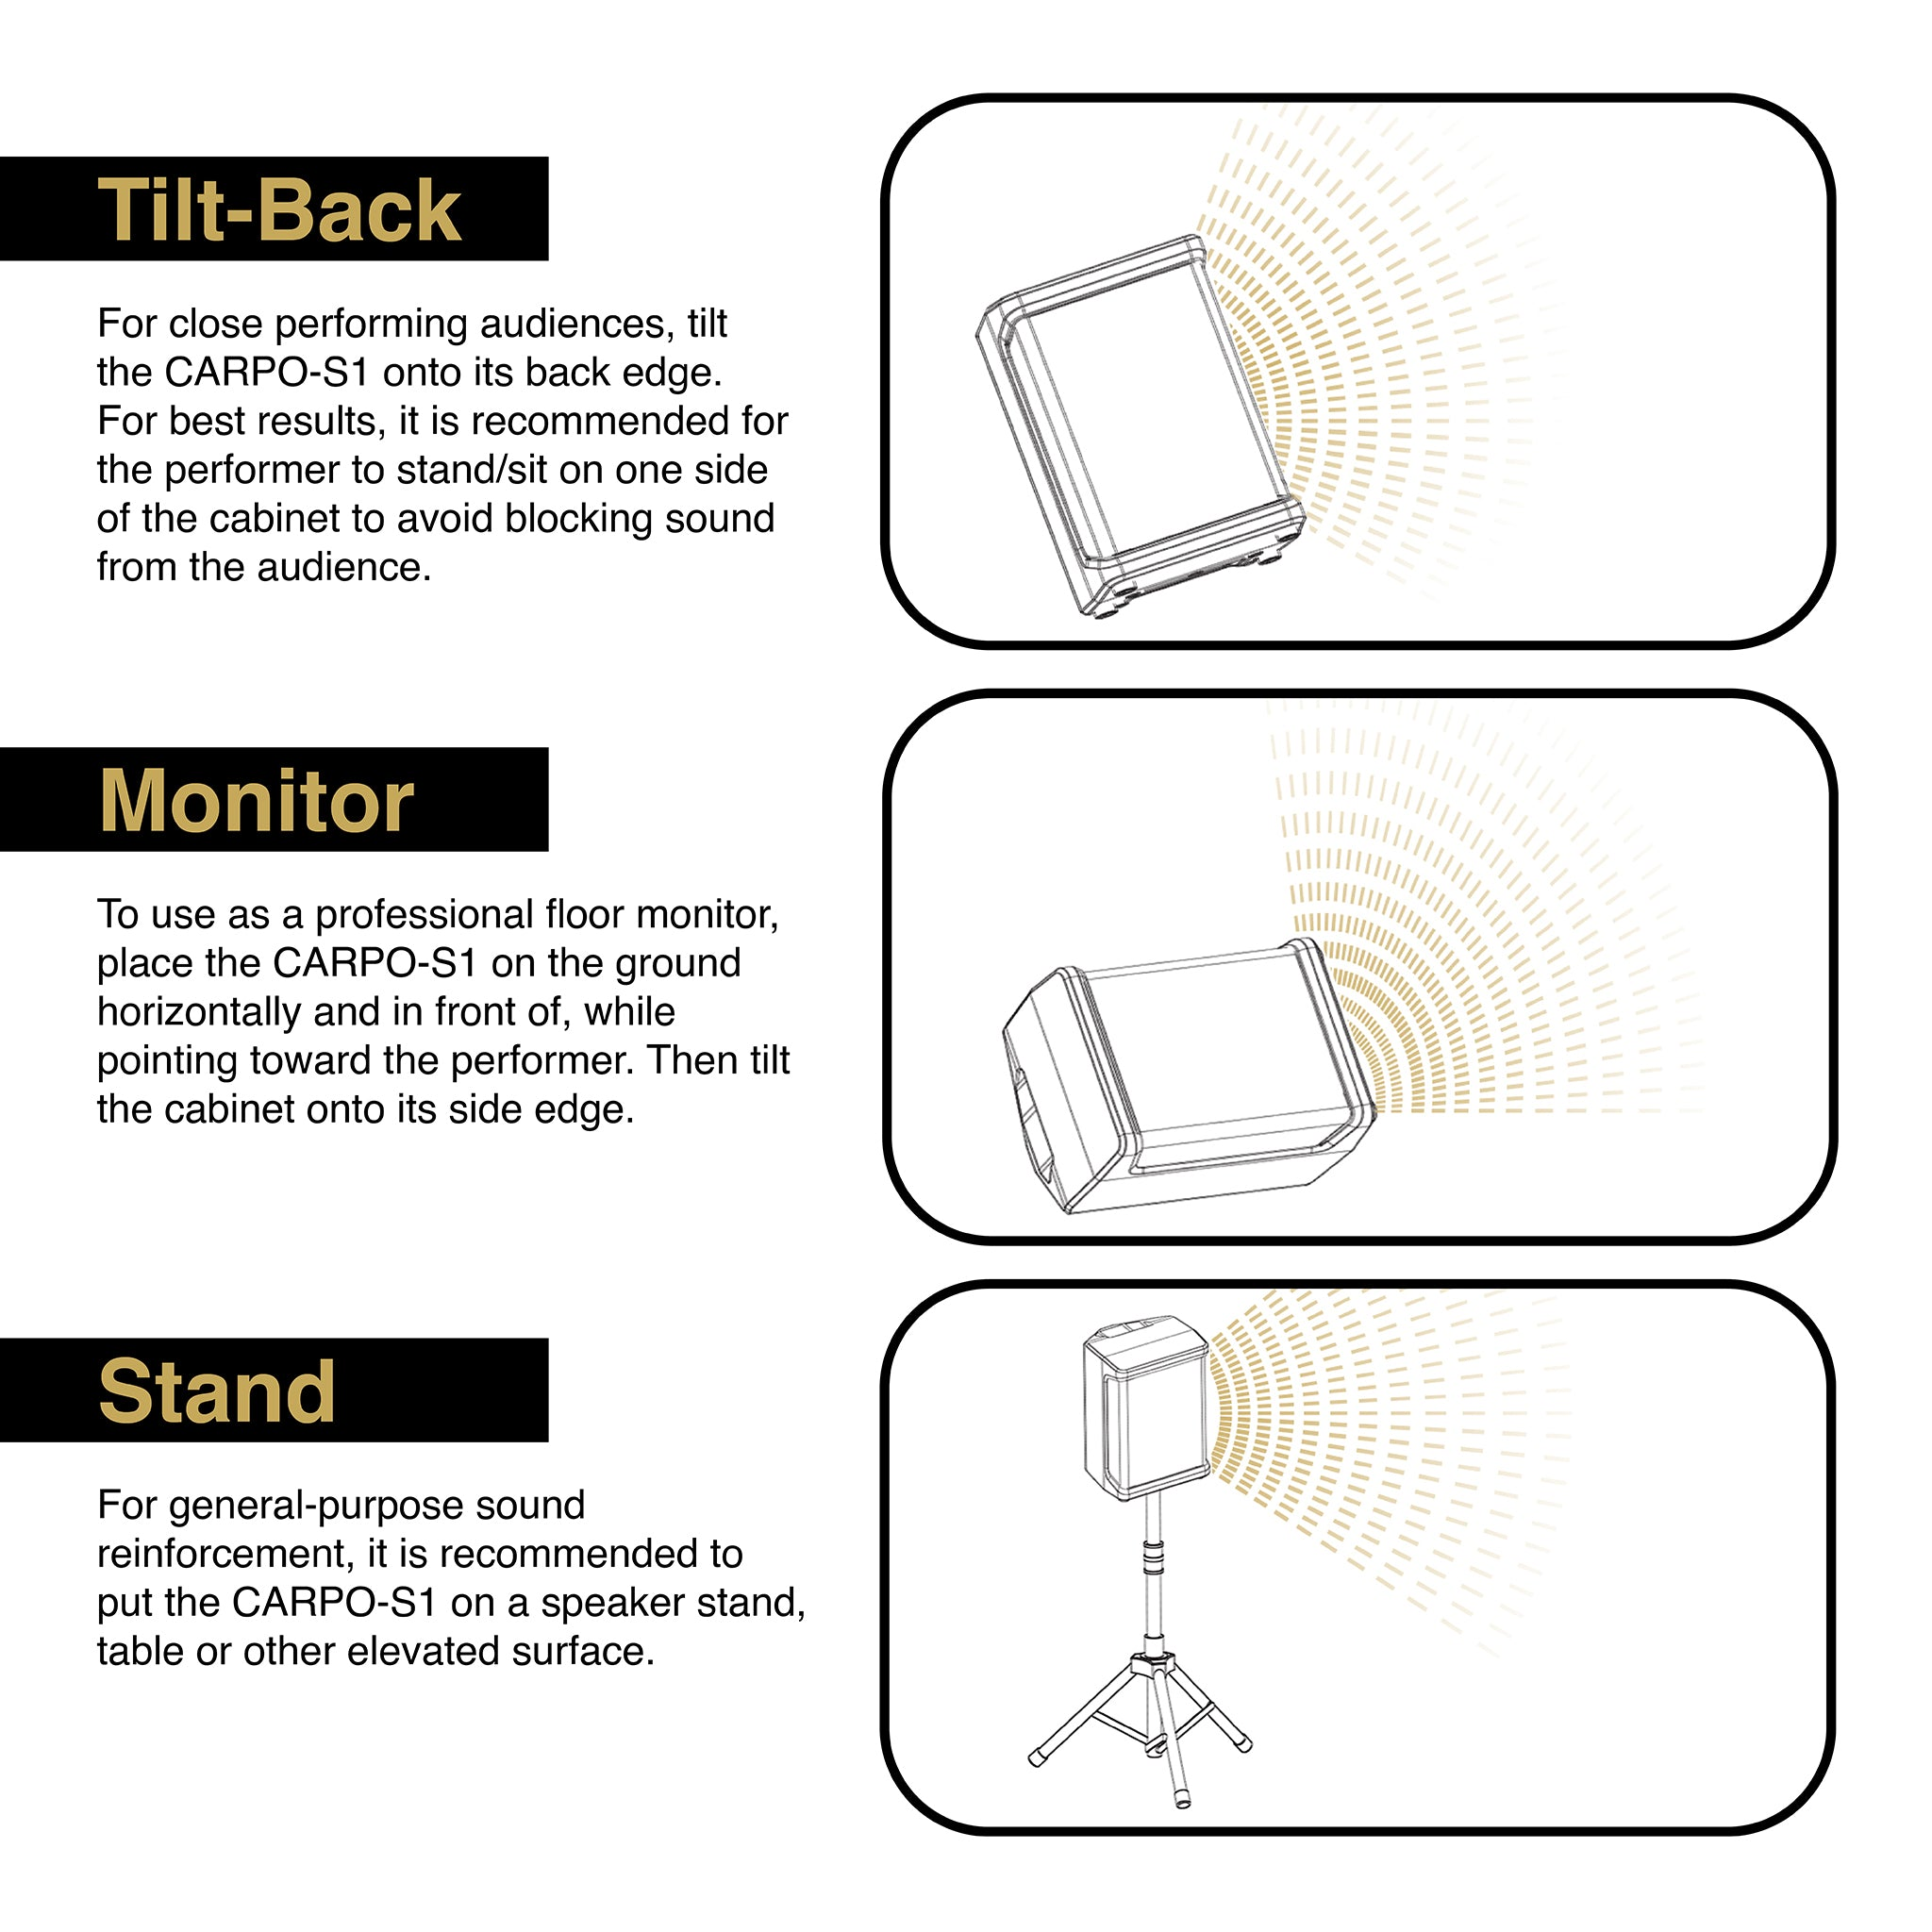 Sound Town CARPO-S1 Multi-Position Diagram, Instructions and Recommendations: Tilt-Back, Floor Monitor, Speaker Stand